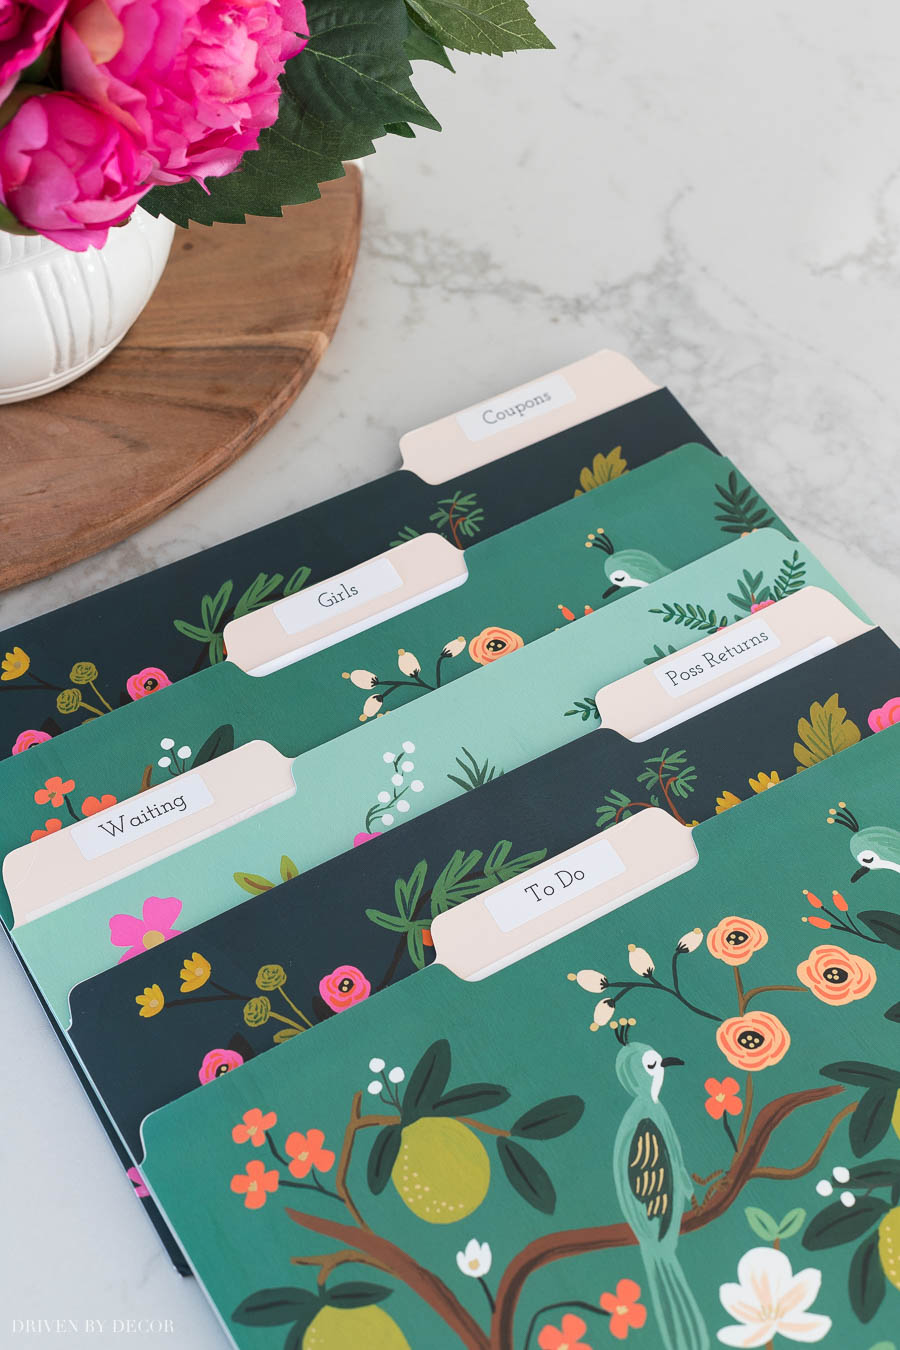 Loving these gorgeous file folders that are part of this kitchen command center!